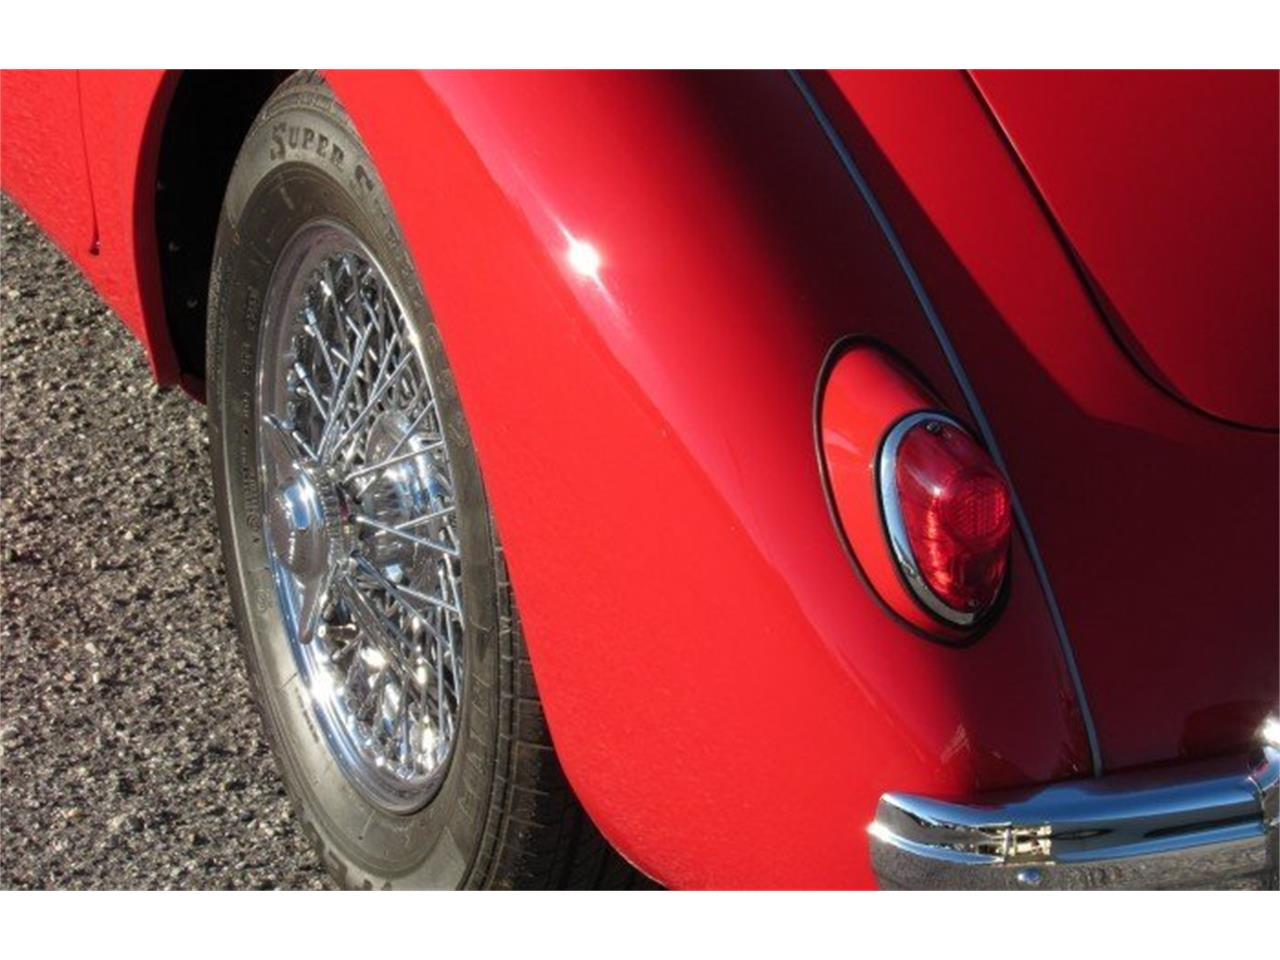 Large Picture of Classic '57 MG MGA located in Punta Gorda Florida Auction Vehicle Offered by Premier Auction Group - PH10